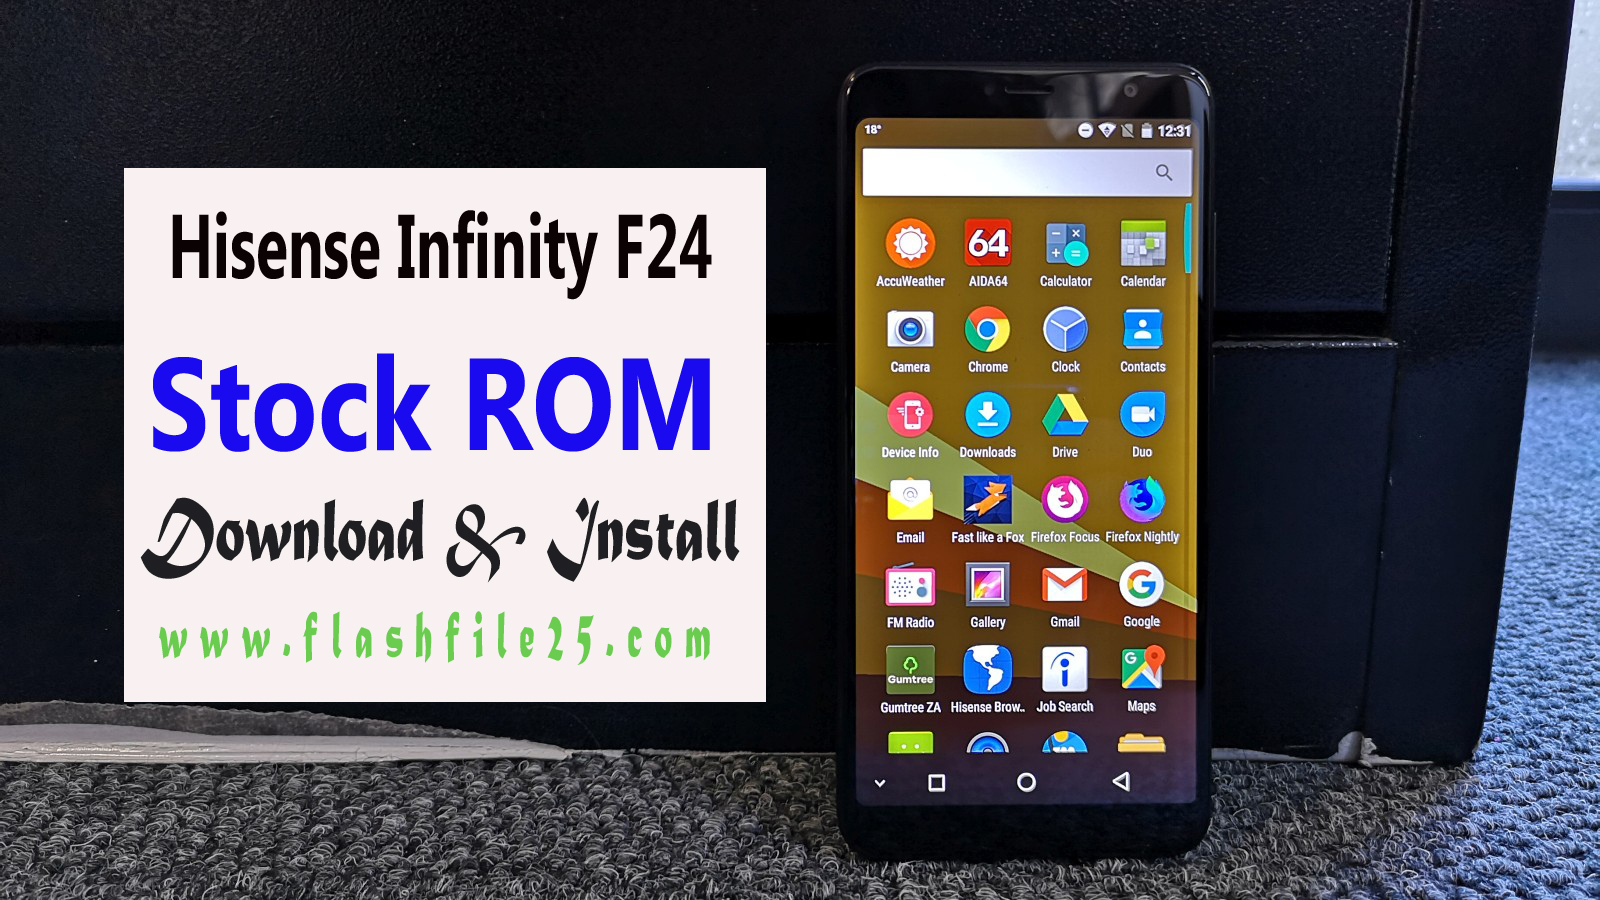 Download Hisense Infinity F24 Stock Rom Firmware (Flash File